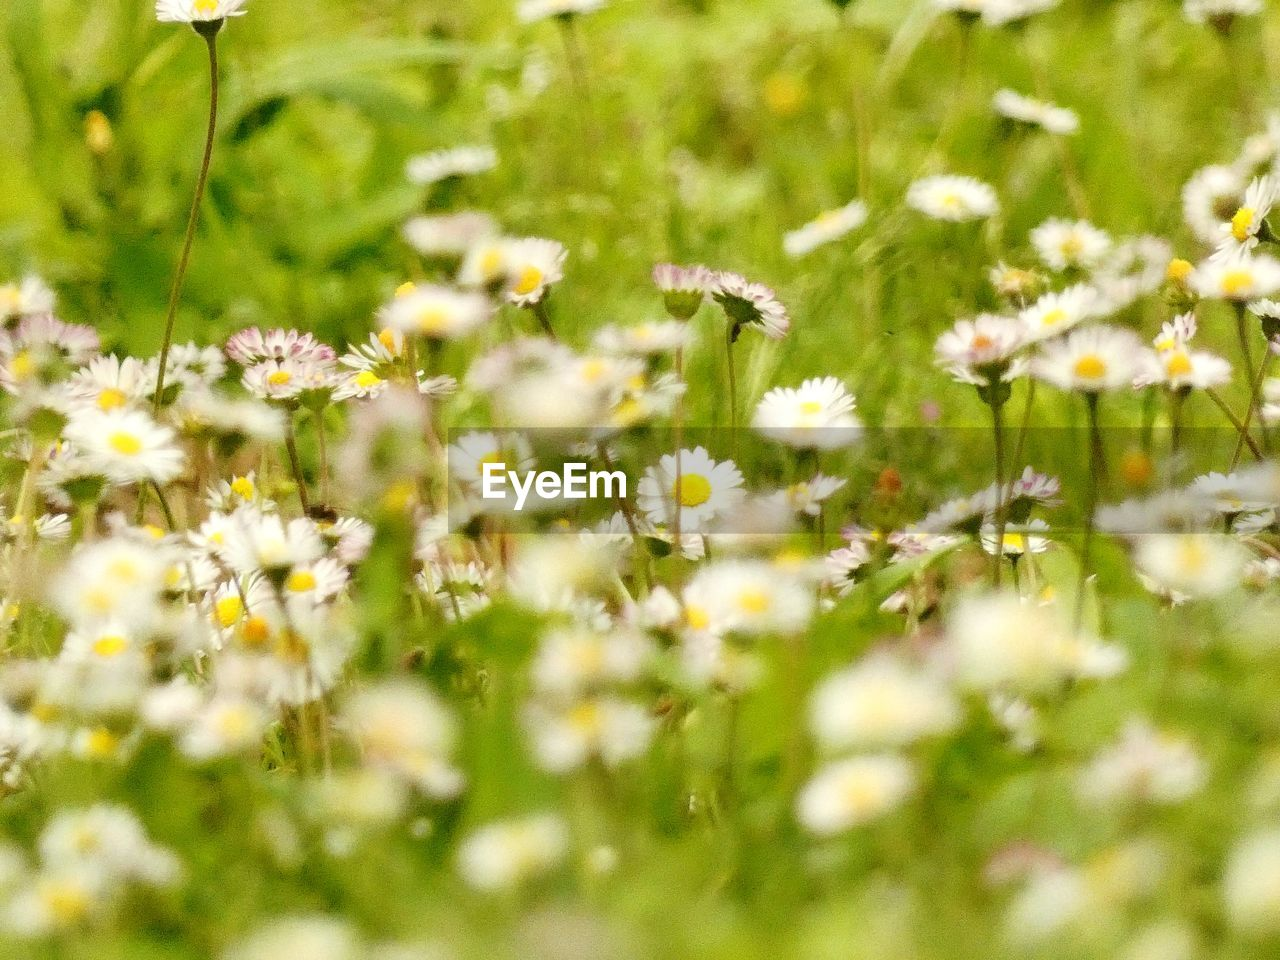 flower, flowering plant, fragility, plant, vulnerability, freshness, growth, beauty in nature, field, selective focus, nature, land, tranquility, no people, daisy, beauty, yellow, day, petal, relaxation, flower head